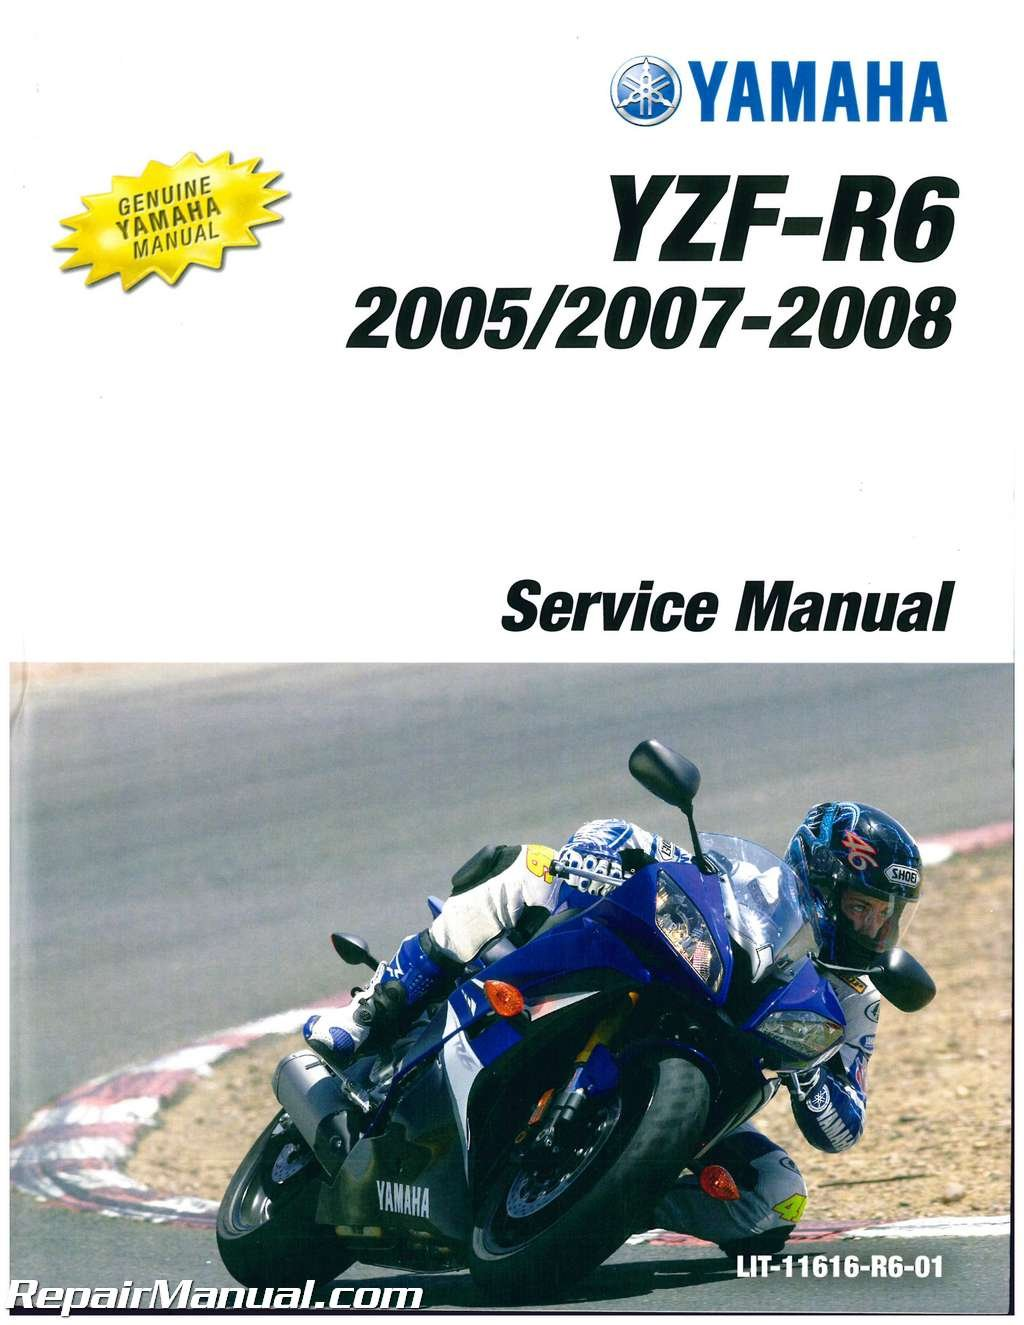 LIT-11616-R6-01 2003-2005 Yamaha YZF-R6 and 2006-2009 YZF-R6S Service Manual:  Manufacturer: Amazon.com: Books